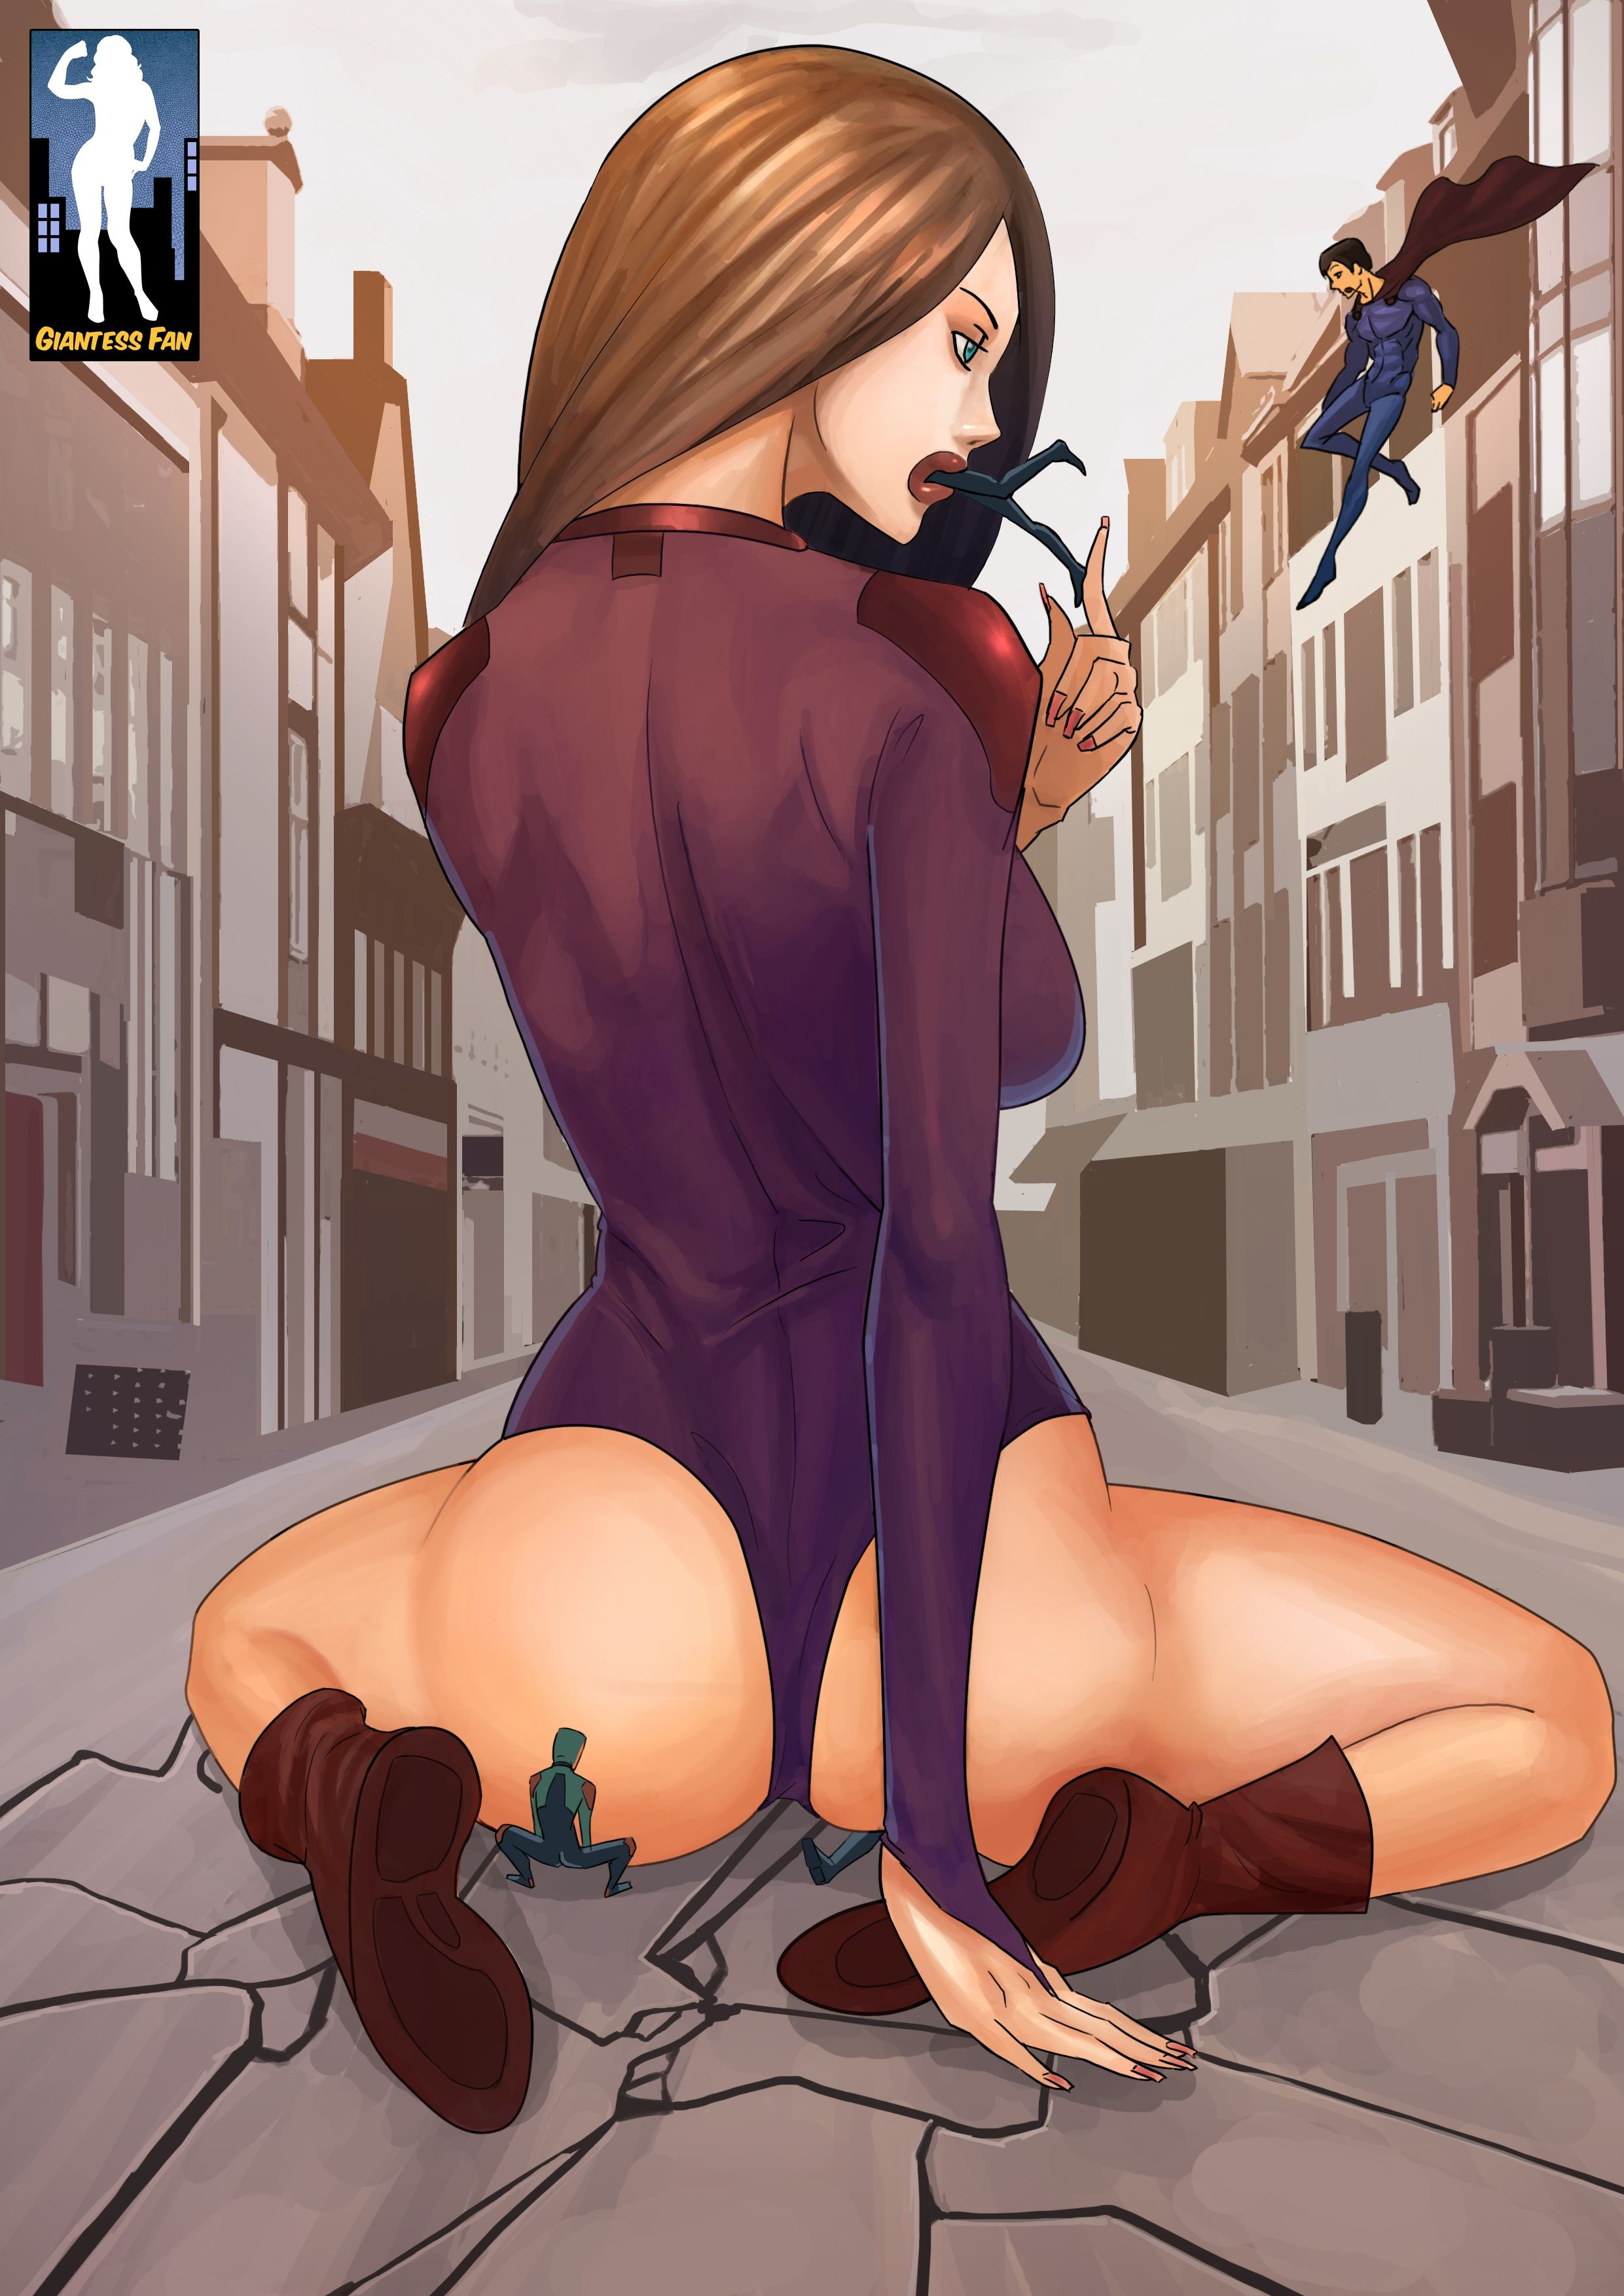 Game Time Vore By Giantess-Fan-Comics On Deviantart -1462